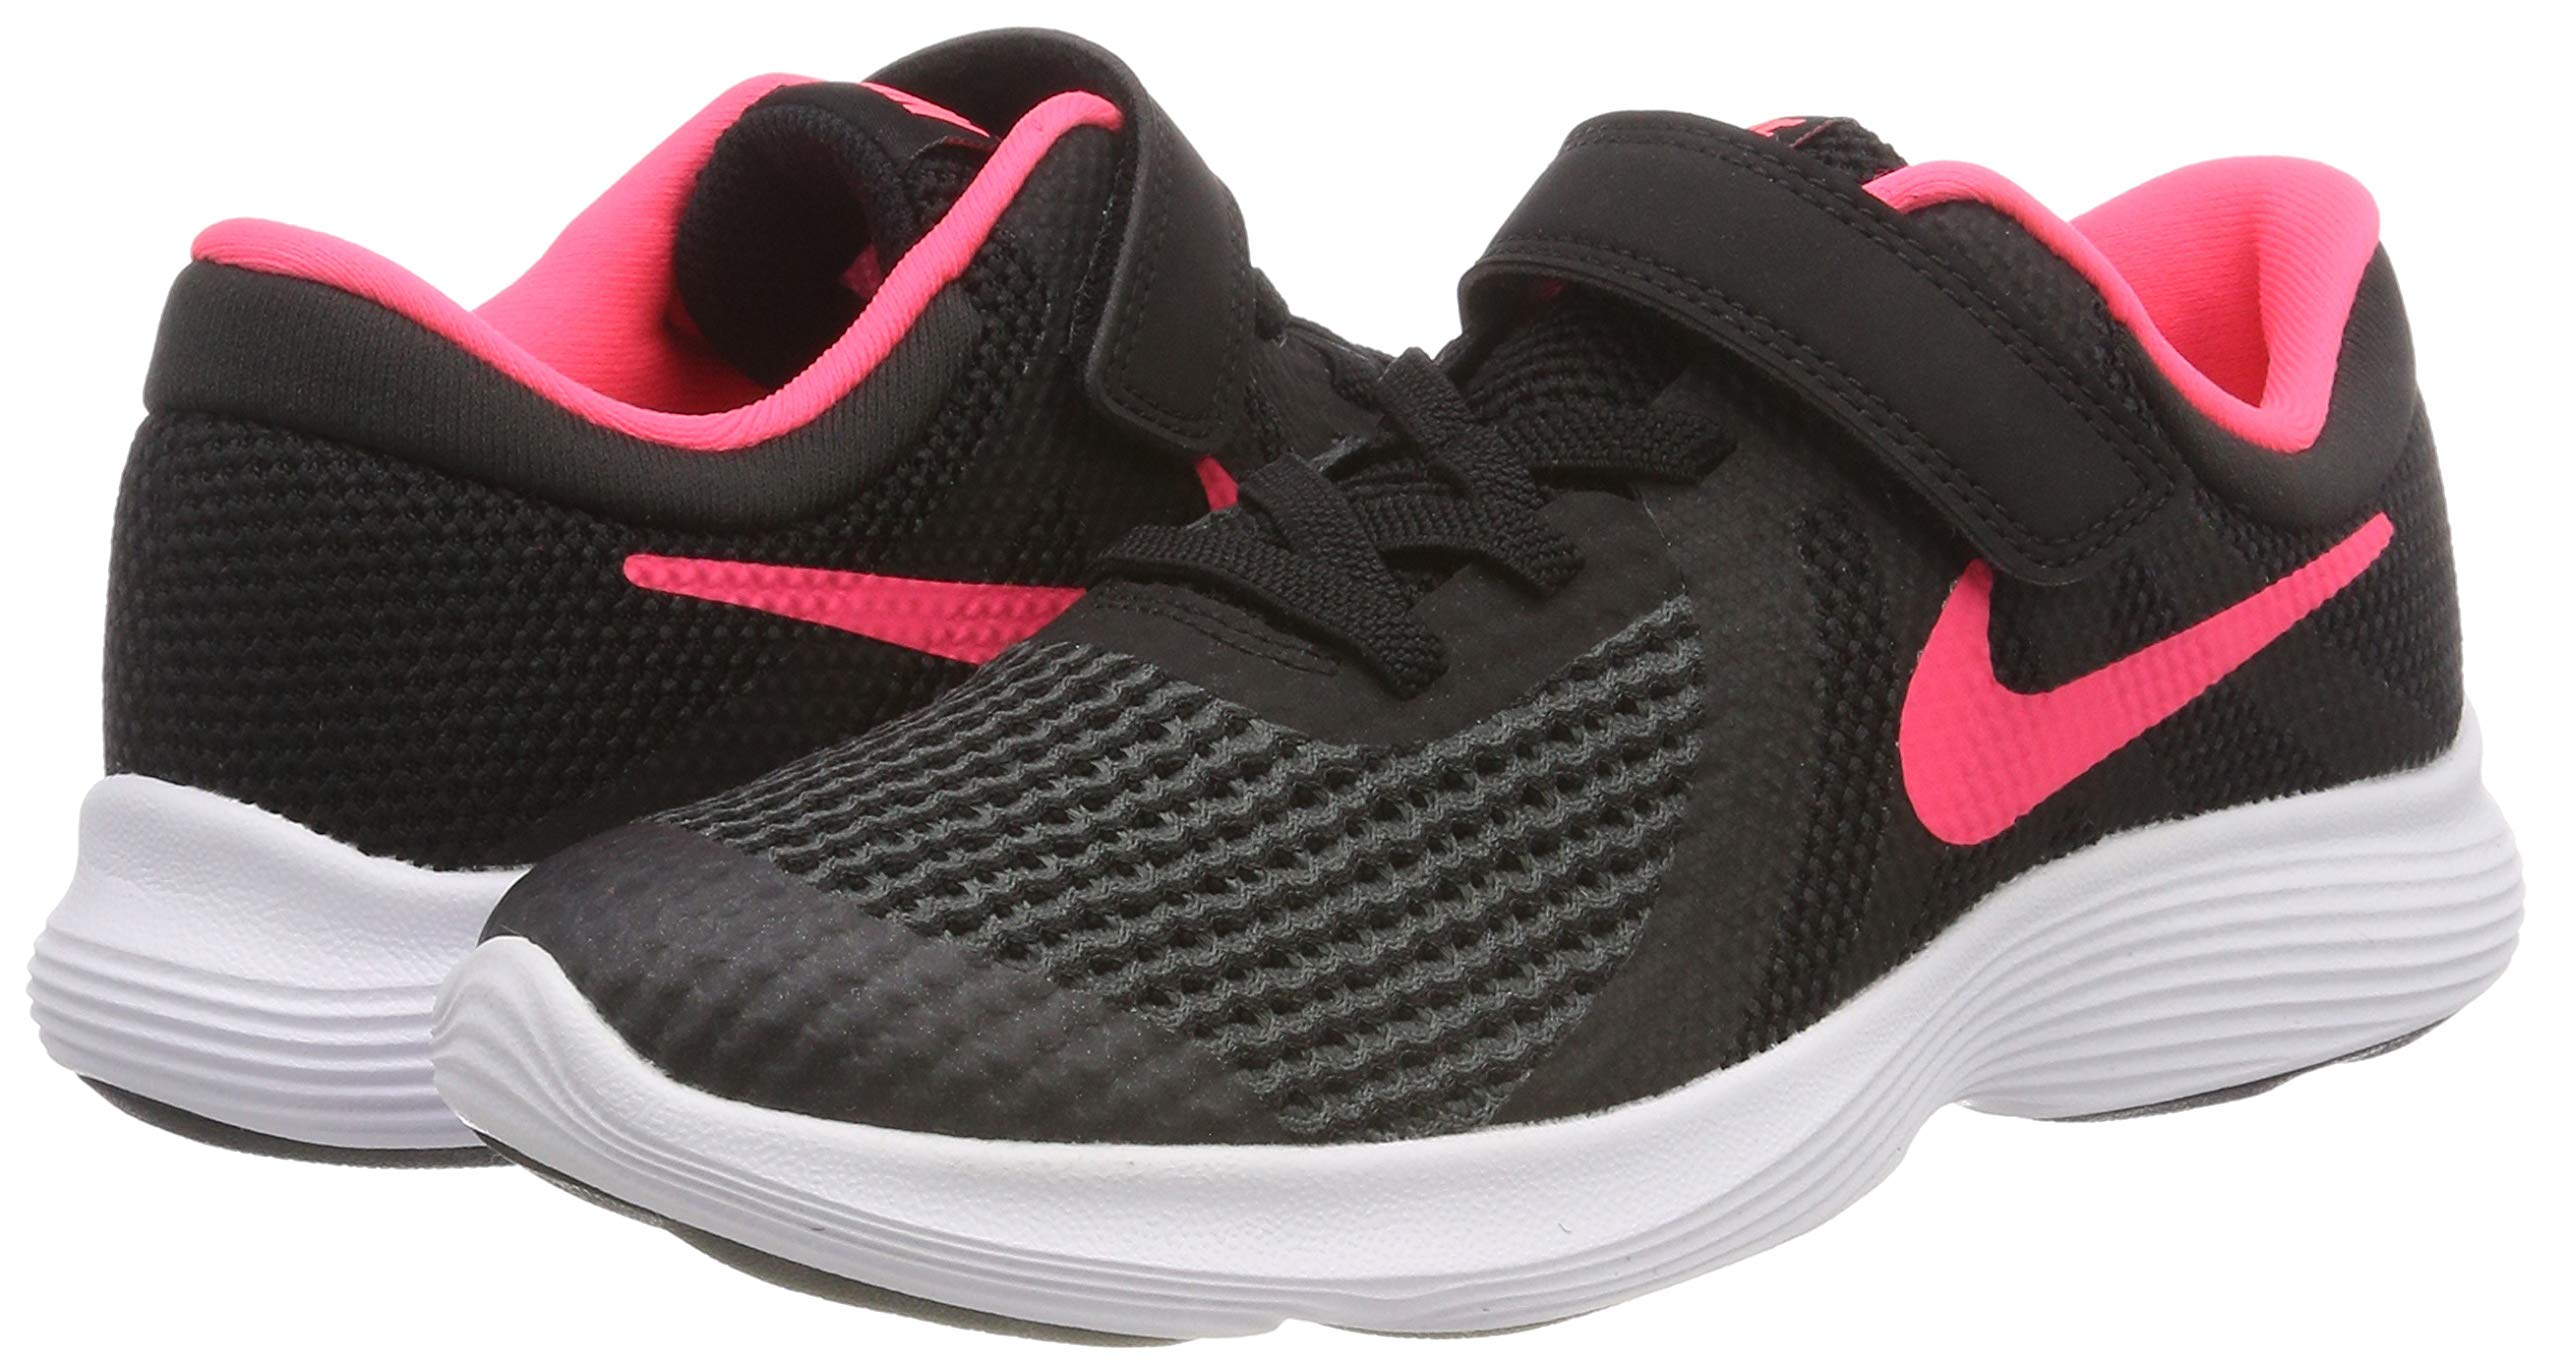 Nike Girls' Revolution 4 (PSV) Running Shoe, Black/Racer Pink - White, 12C Regular US Little Kid by Nike (Image #5)